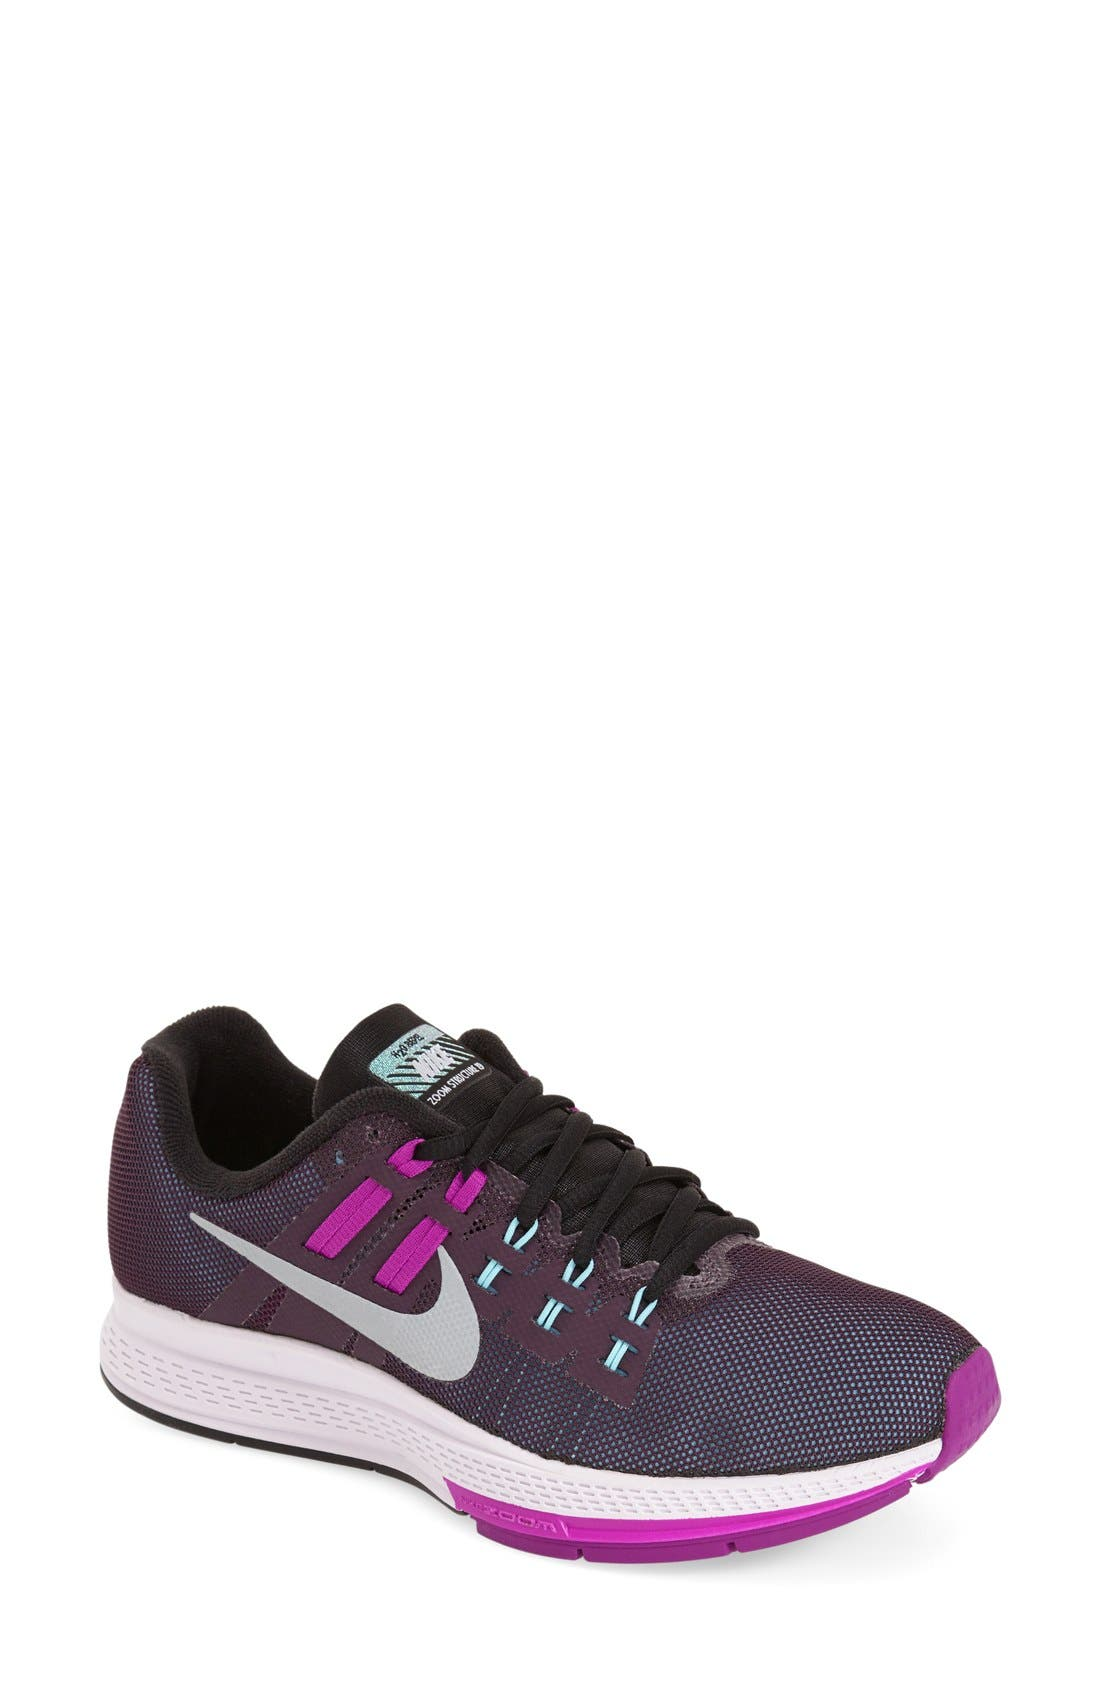 Main Image - Nike 'Air Zoom Structure 19' Running Shoe (Women)